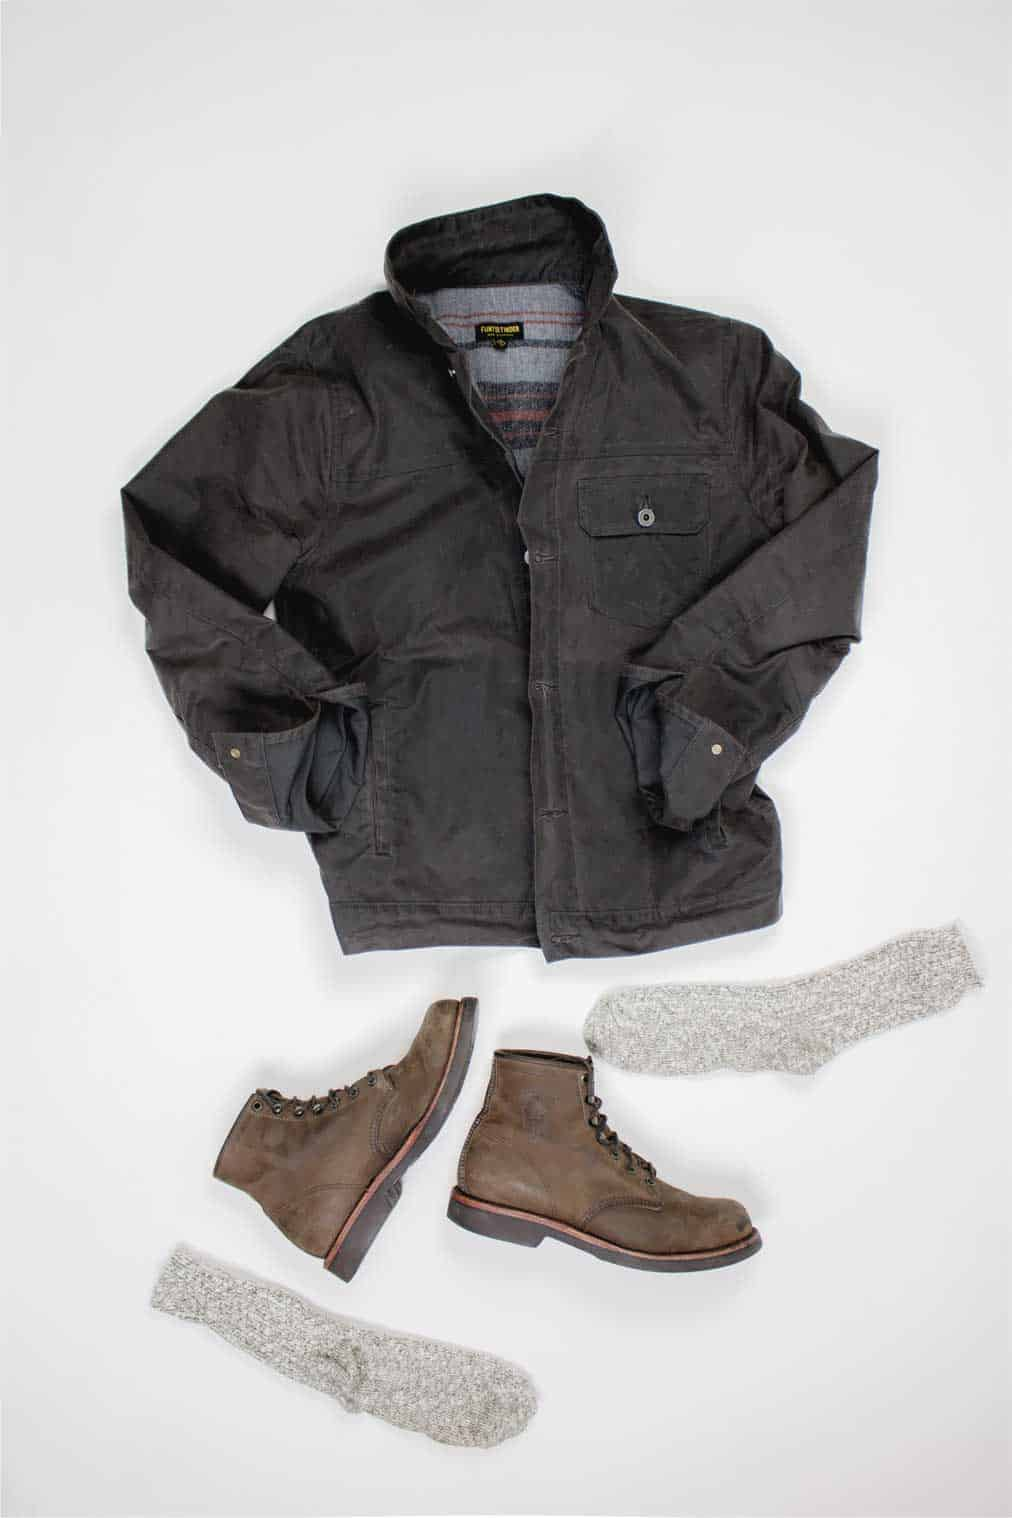 huckberry waxed trucker jacket brown chippewa boots wigwam camp socks